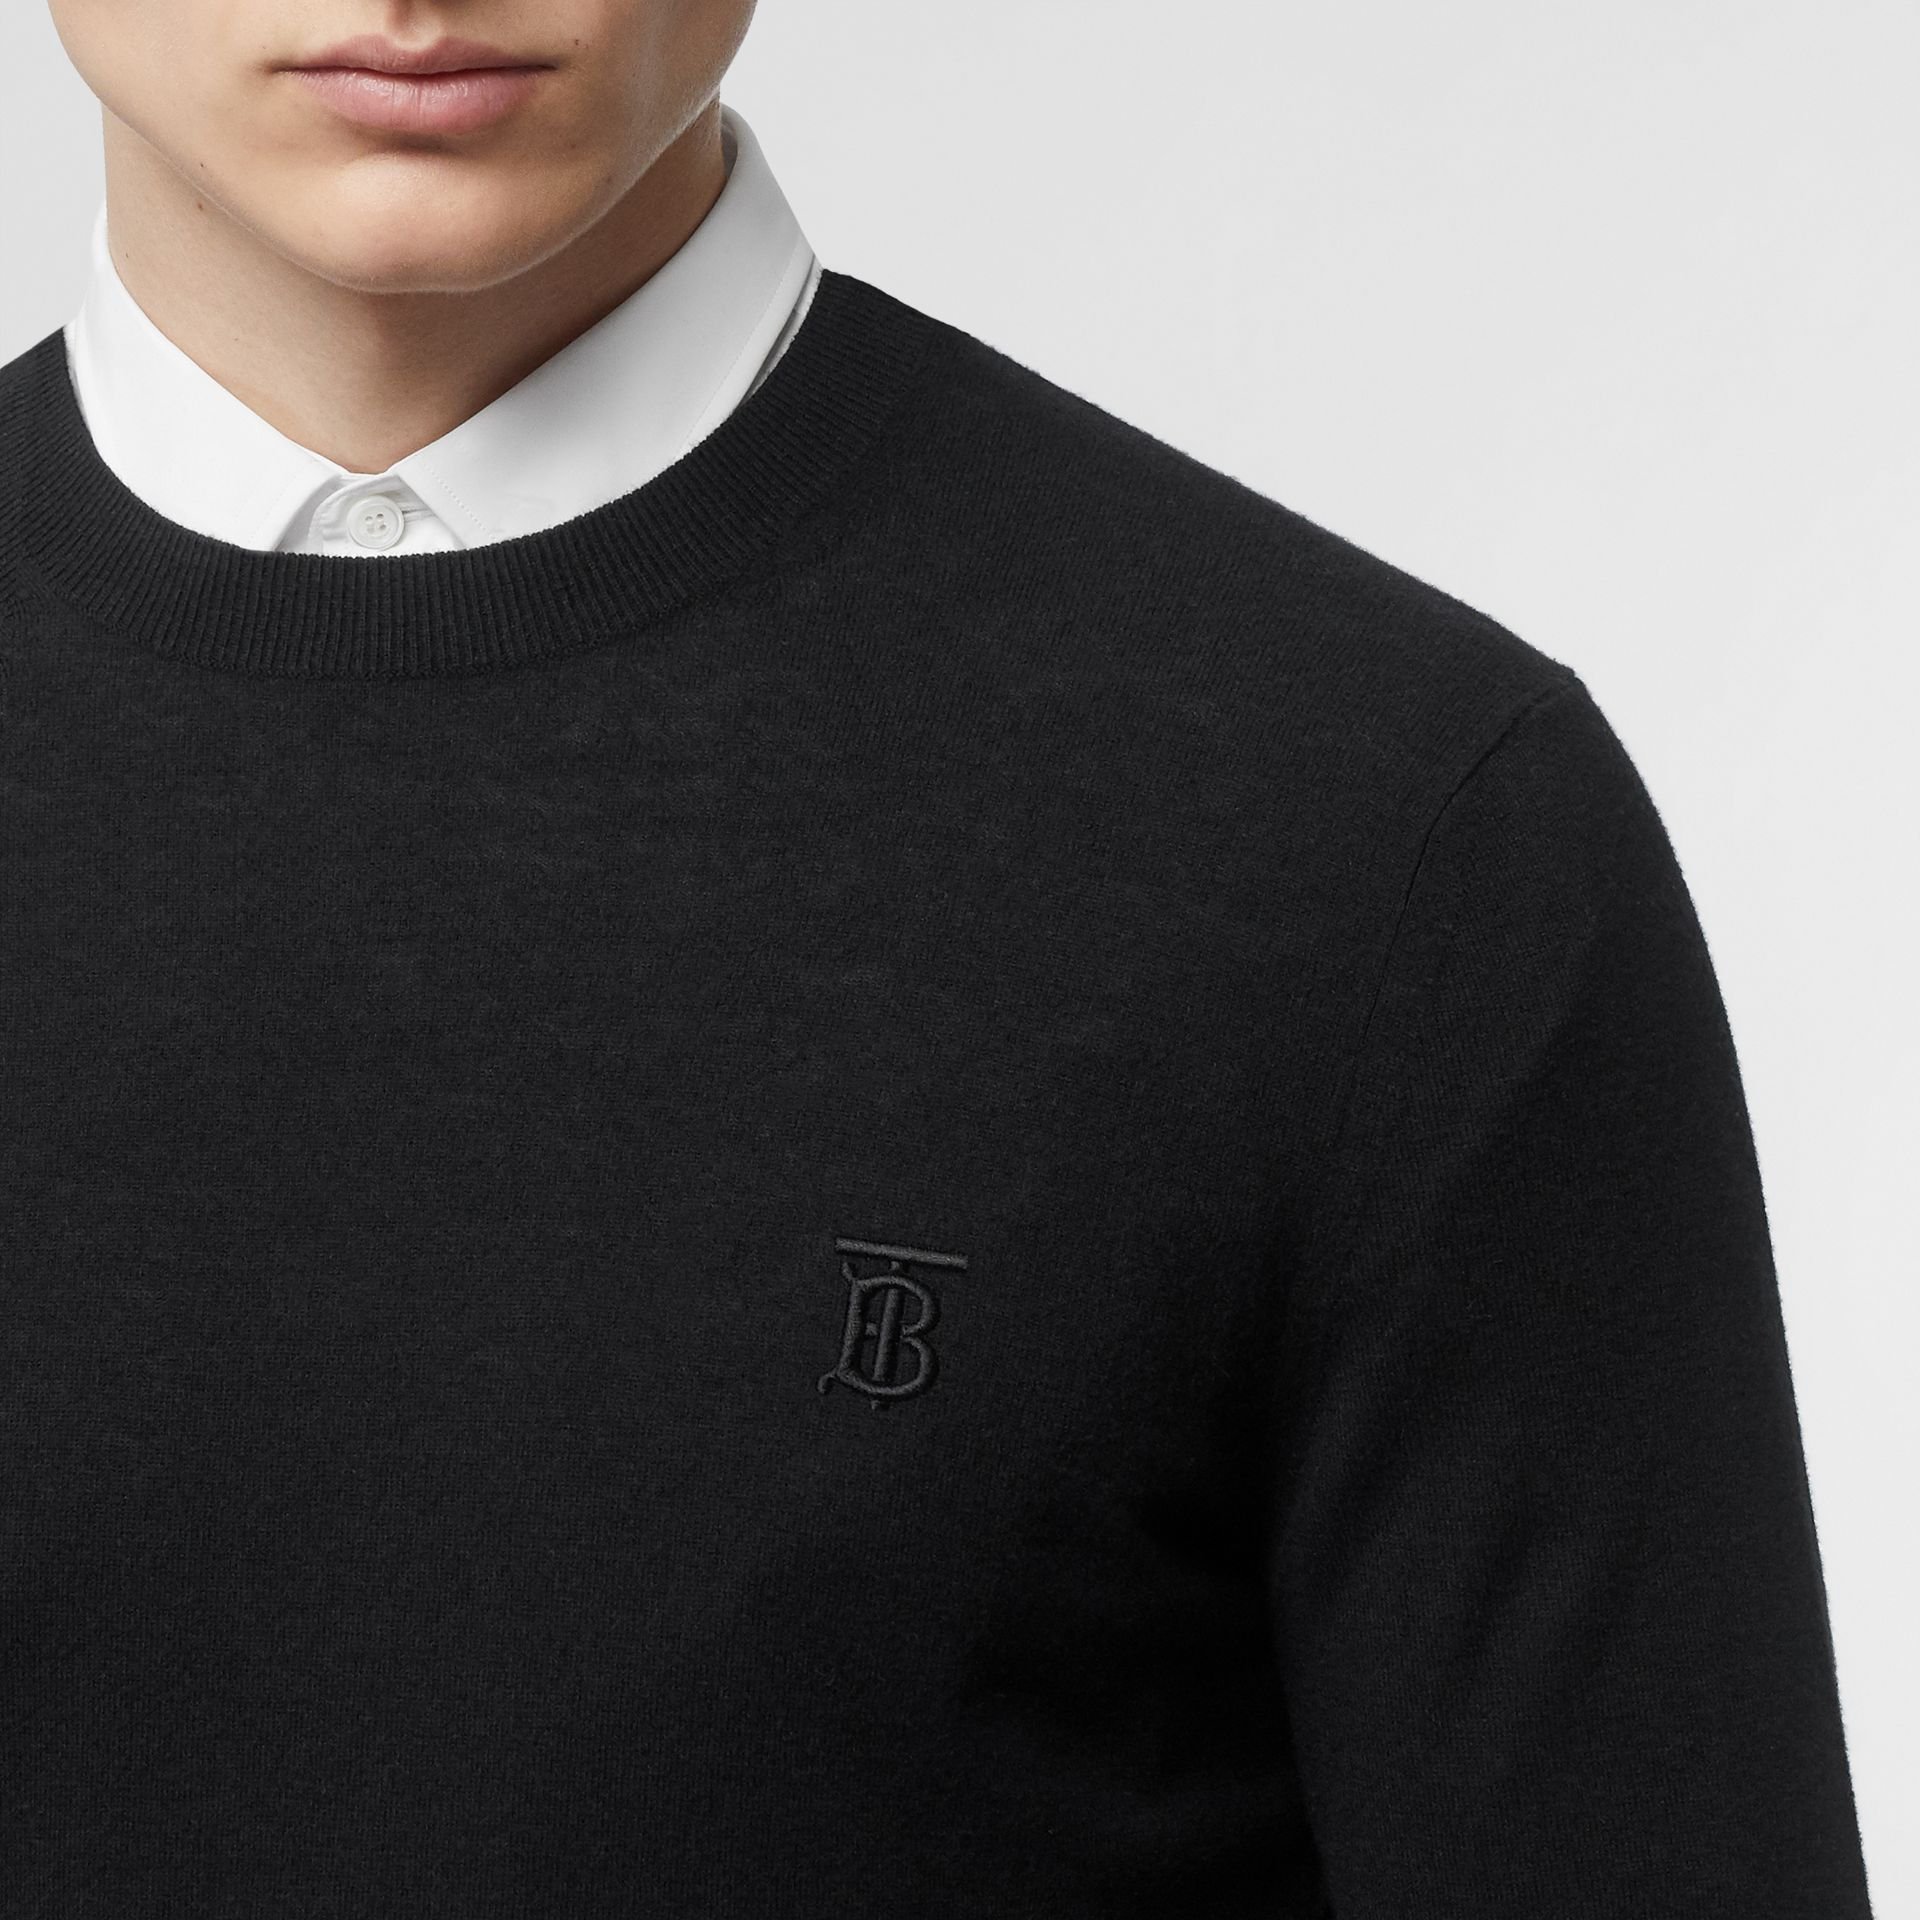 Monogram Motif Cashmere Sweater in Black - Men | Burberry - gallery image 1